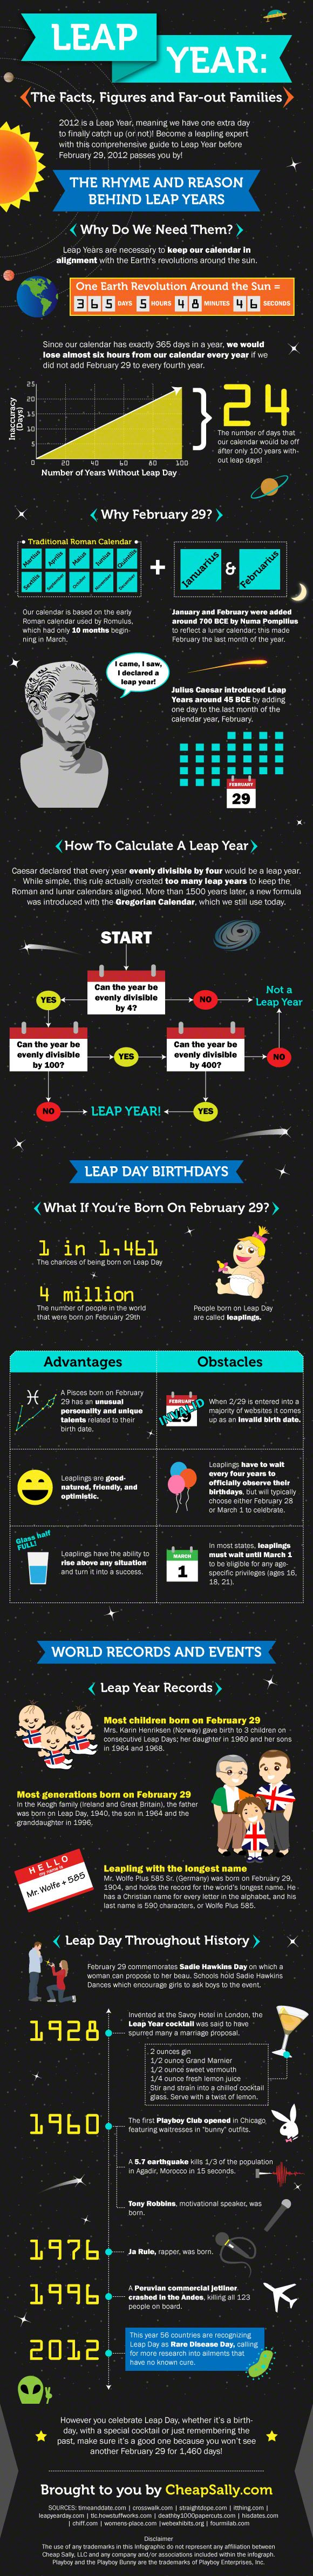 CheapSally.com Leap Year Infographic #inforgraphic #marketingmaterial